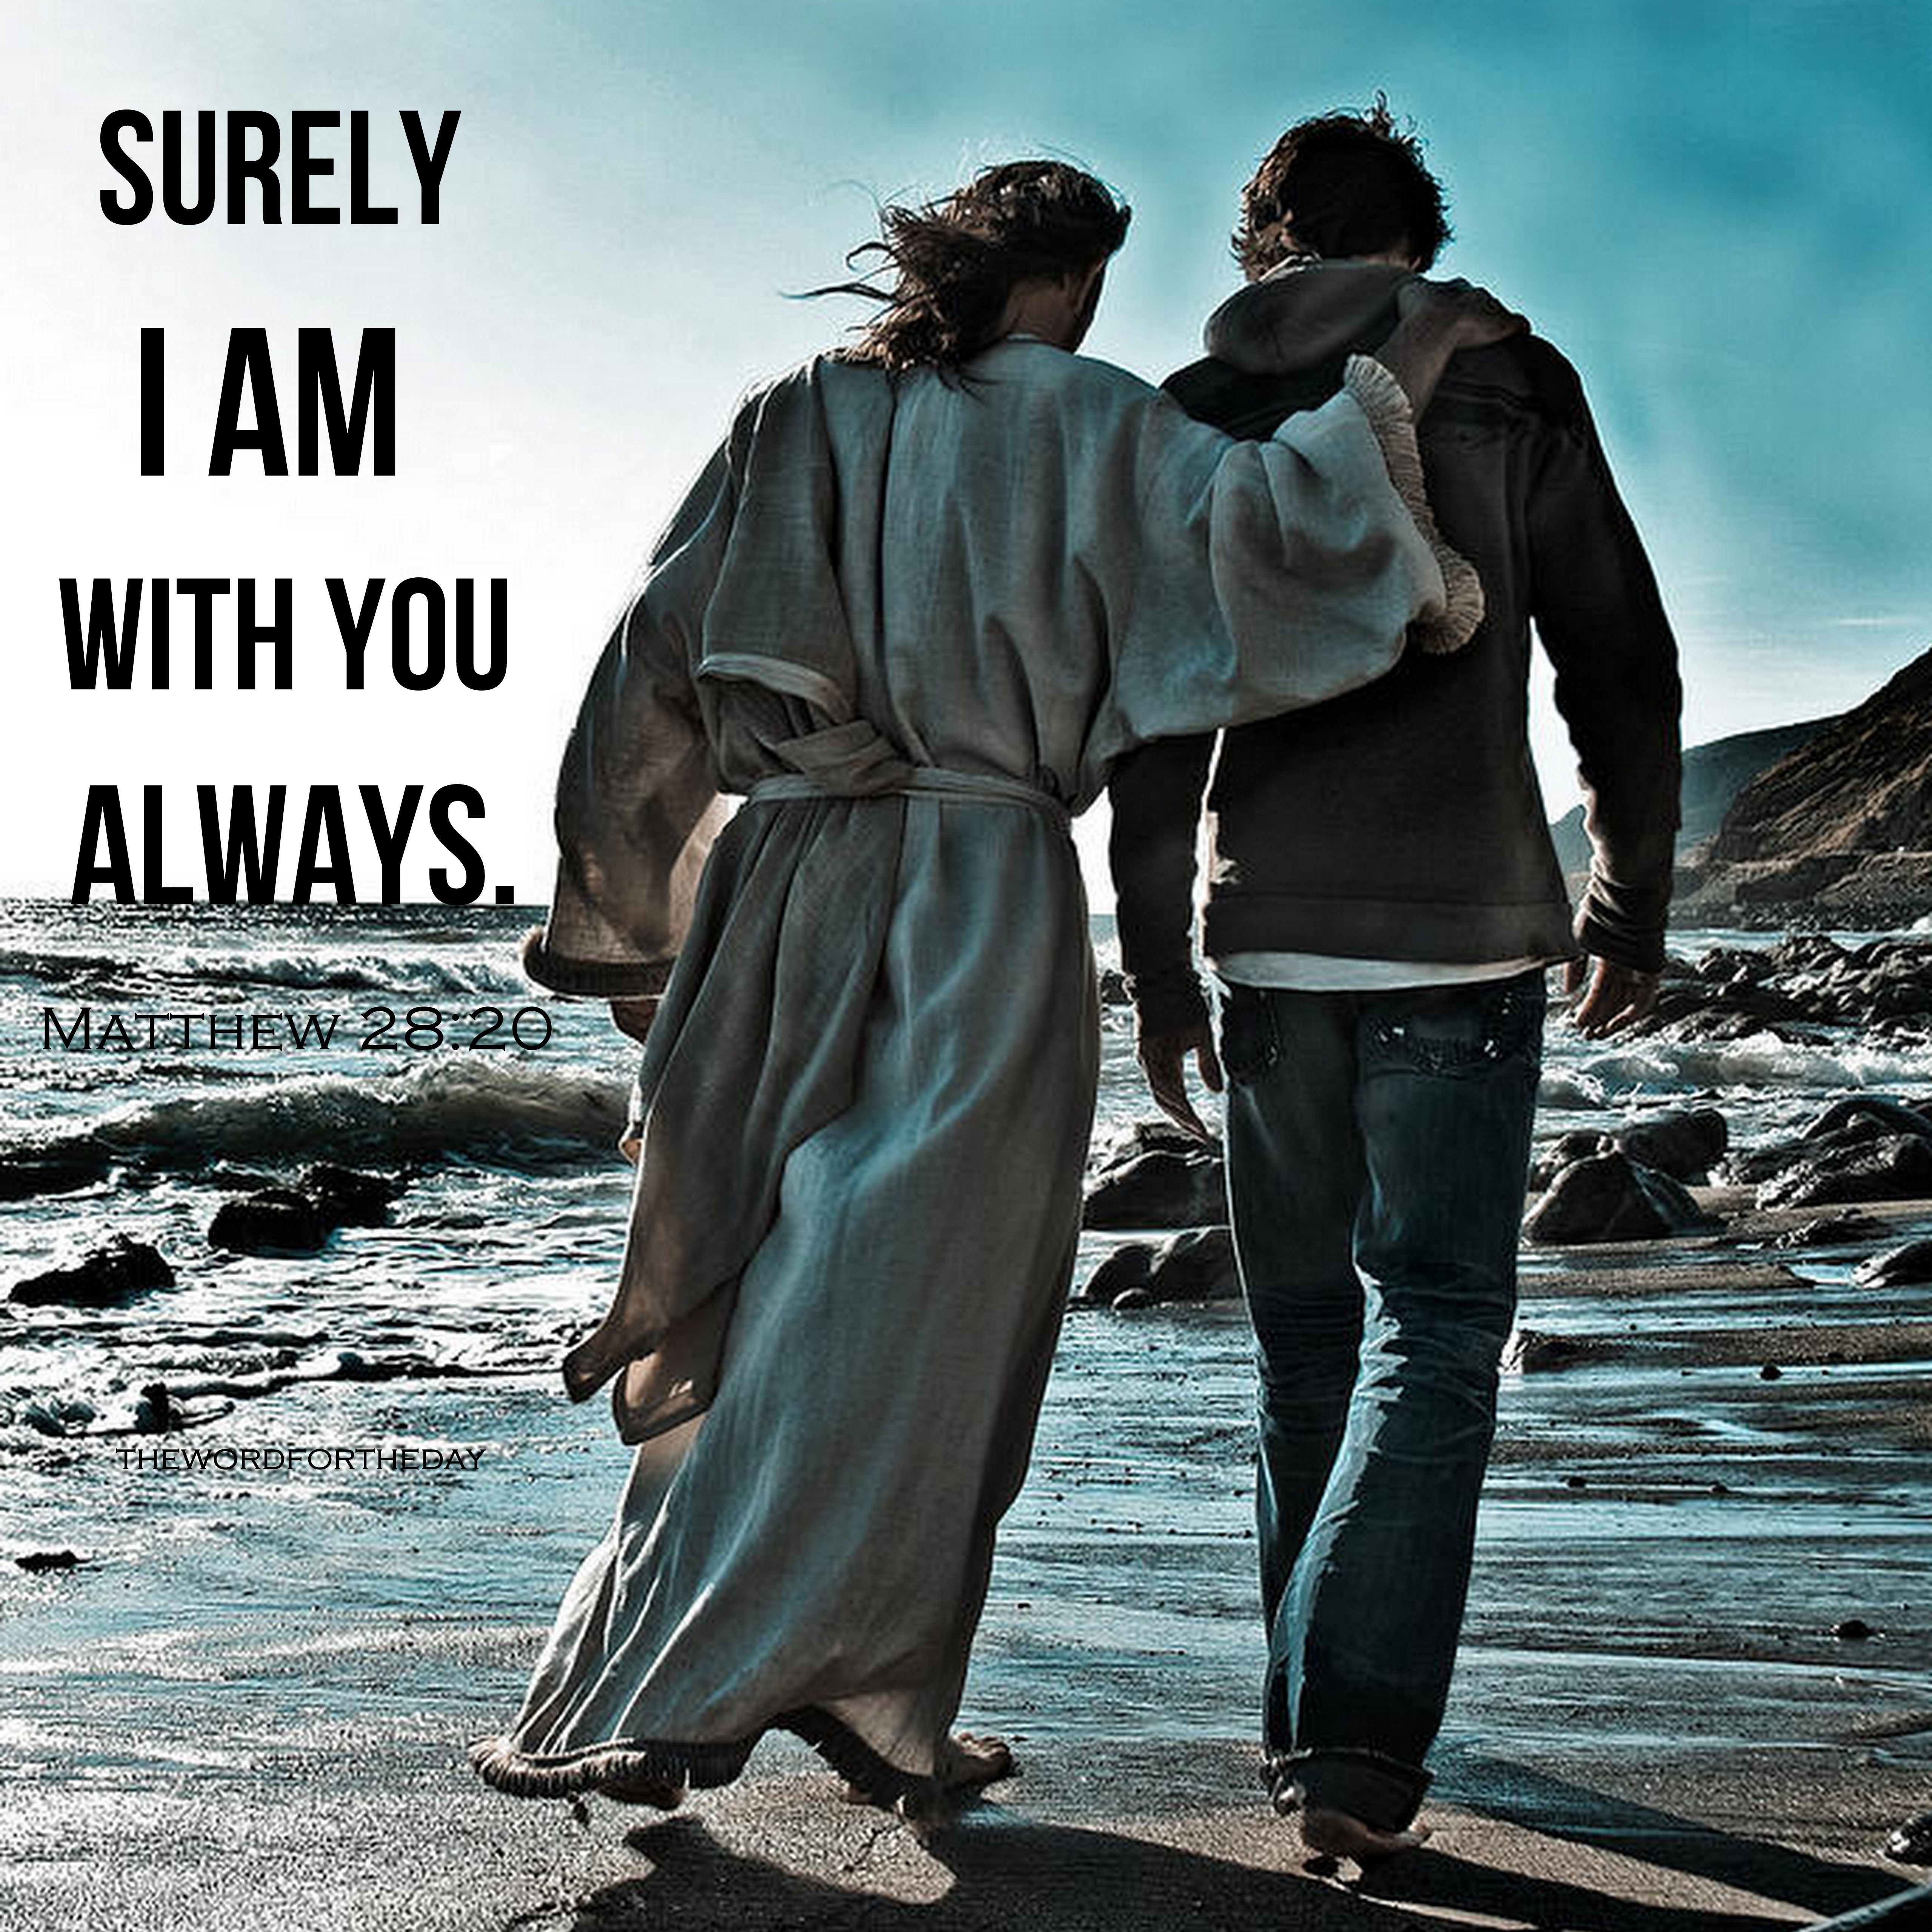 Bible Am Going To Deliver You: BIBLE VERSE, BIBLE QUOTE, JESUS CHRIST, I AM WITH YOU, THE